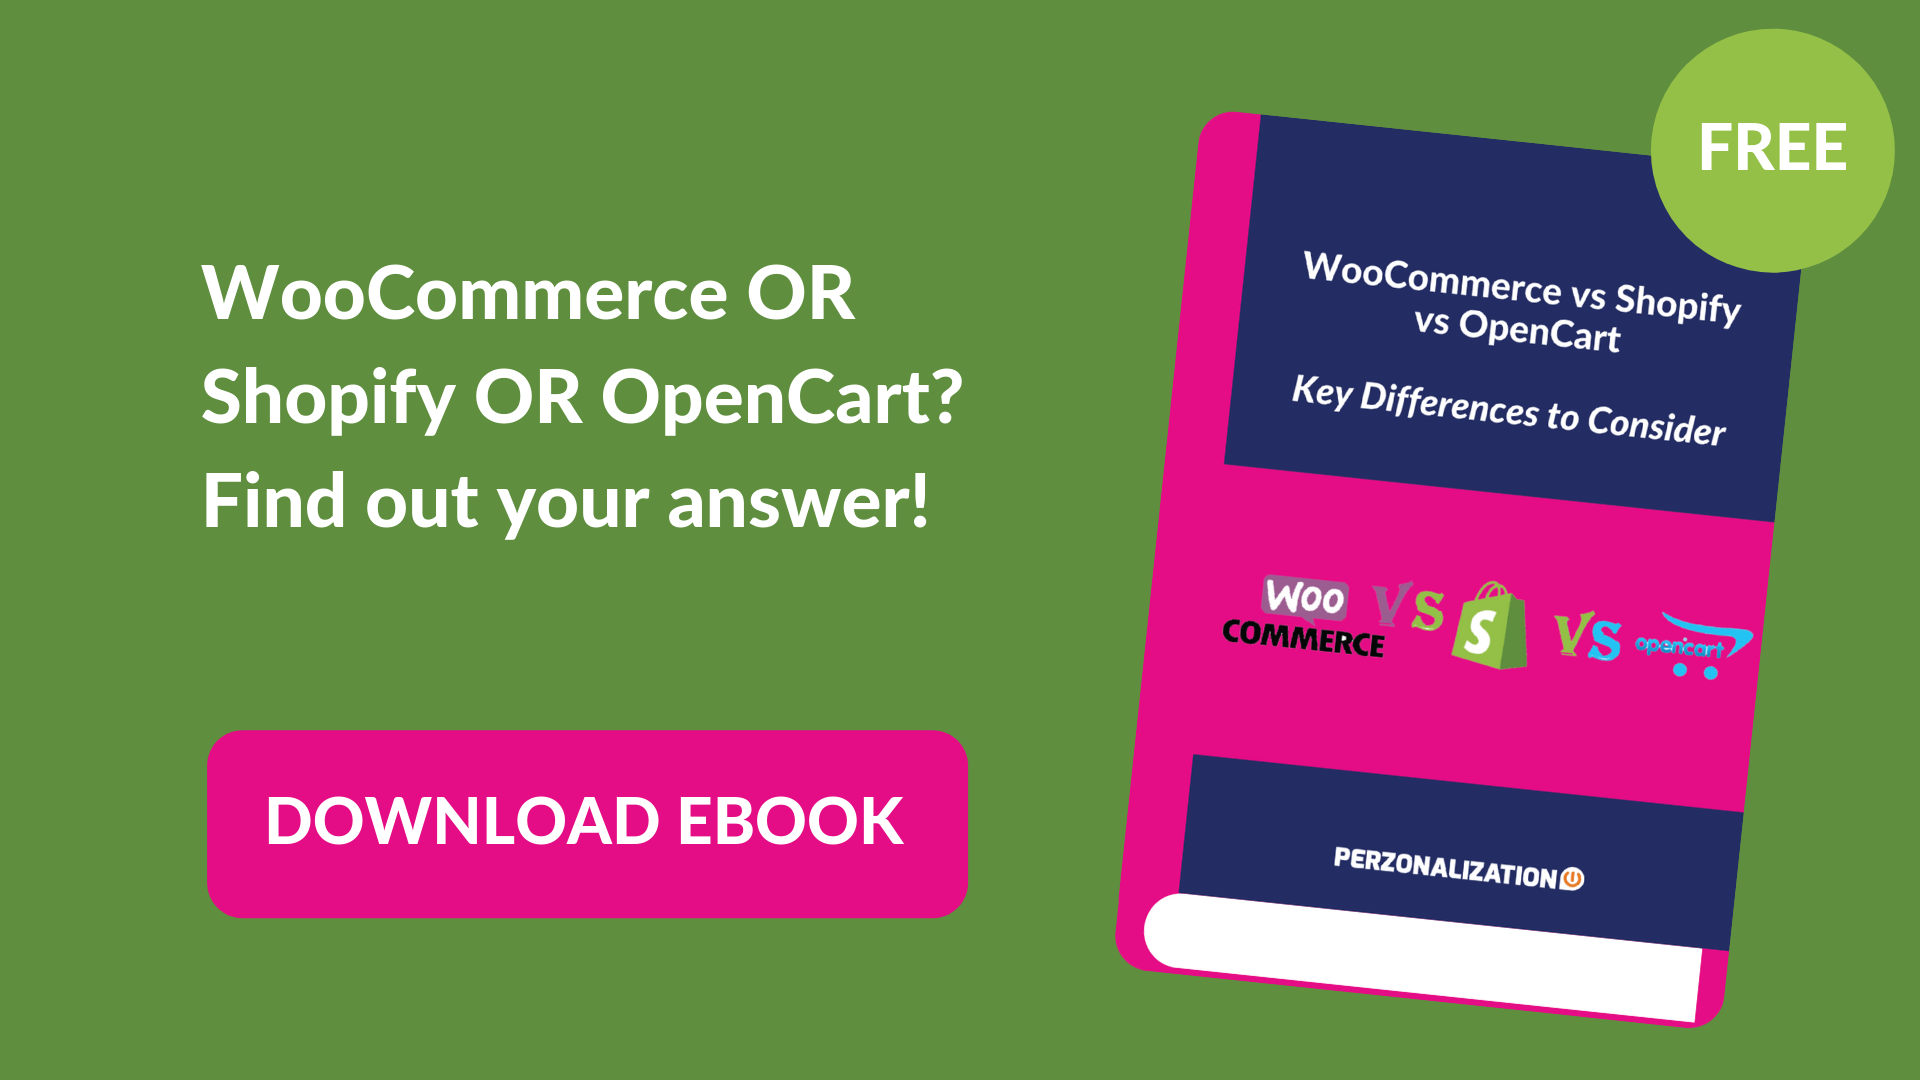 Download your free eBook: WooCommerce or Shopify or Opencart?